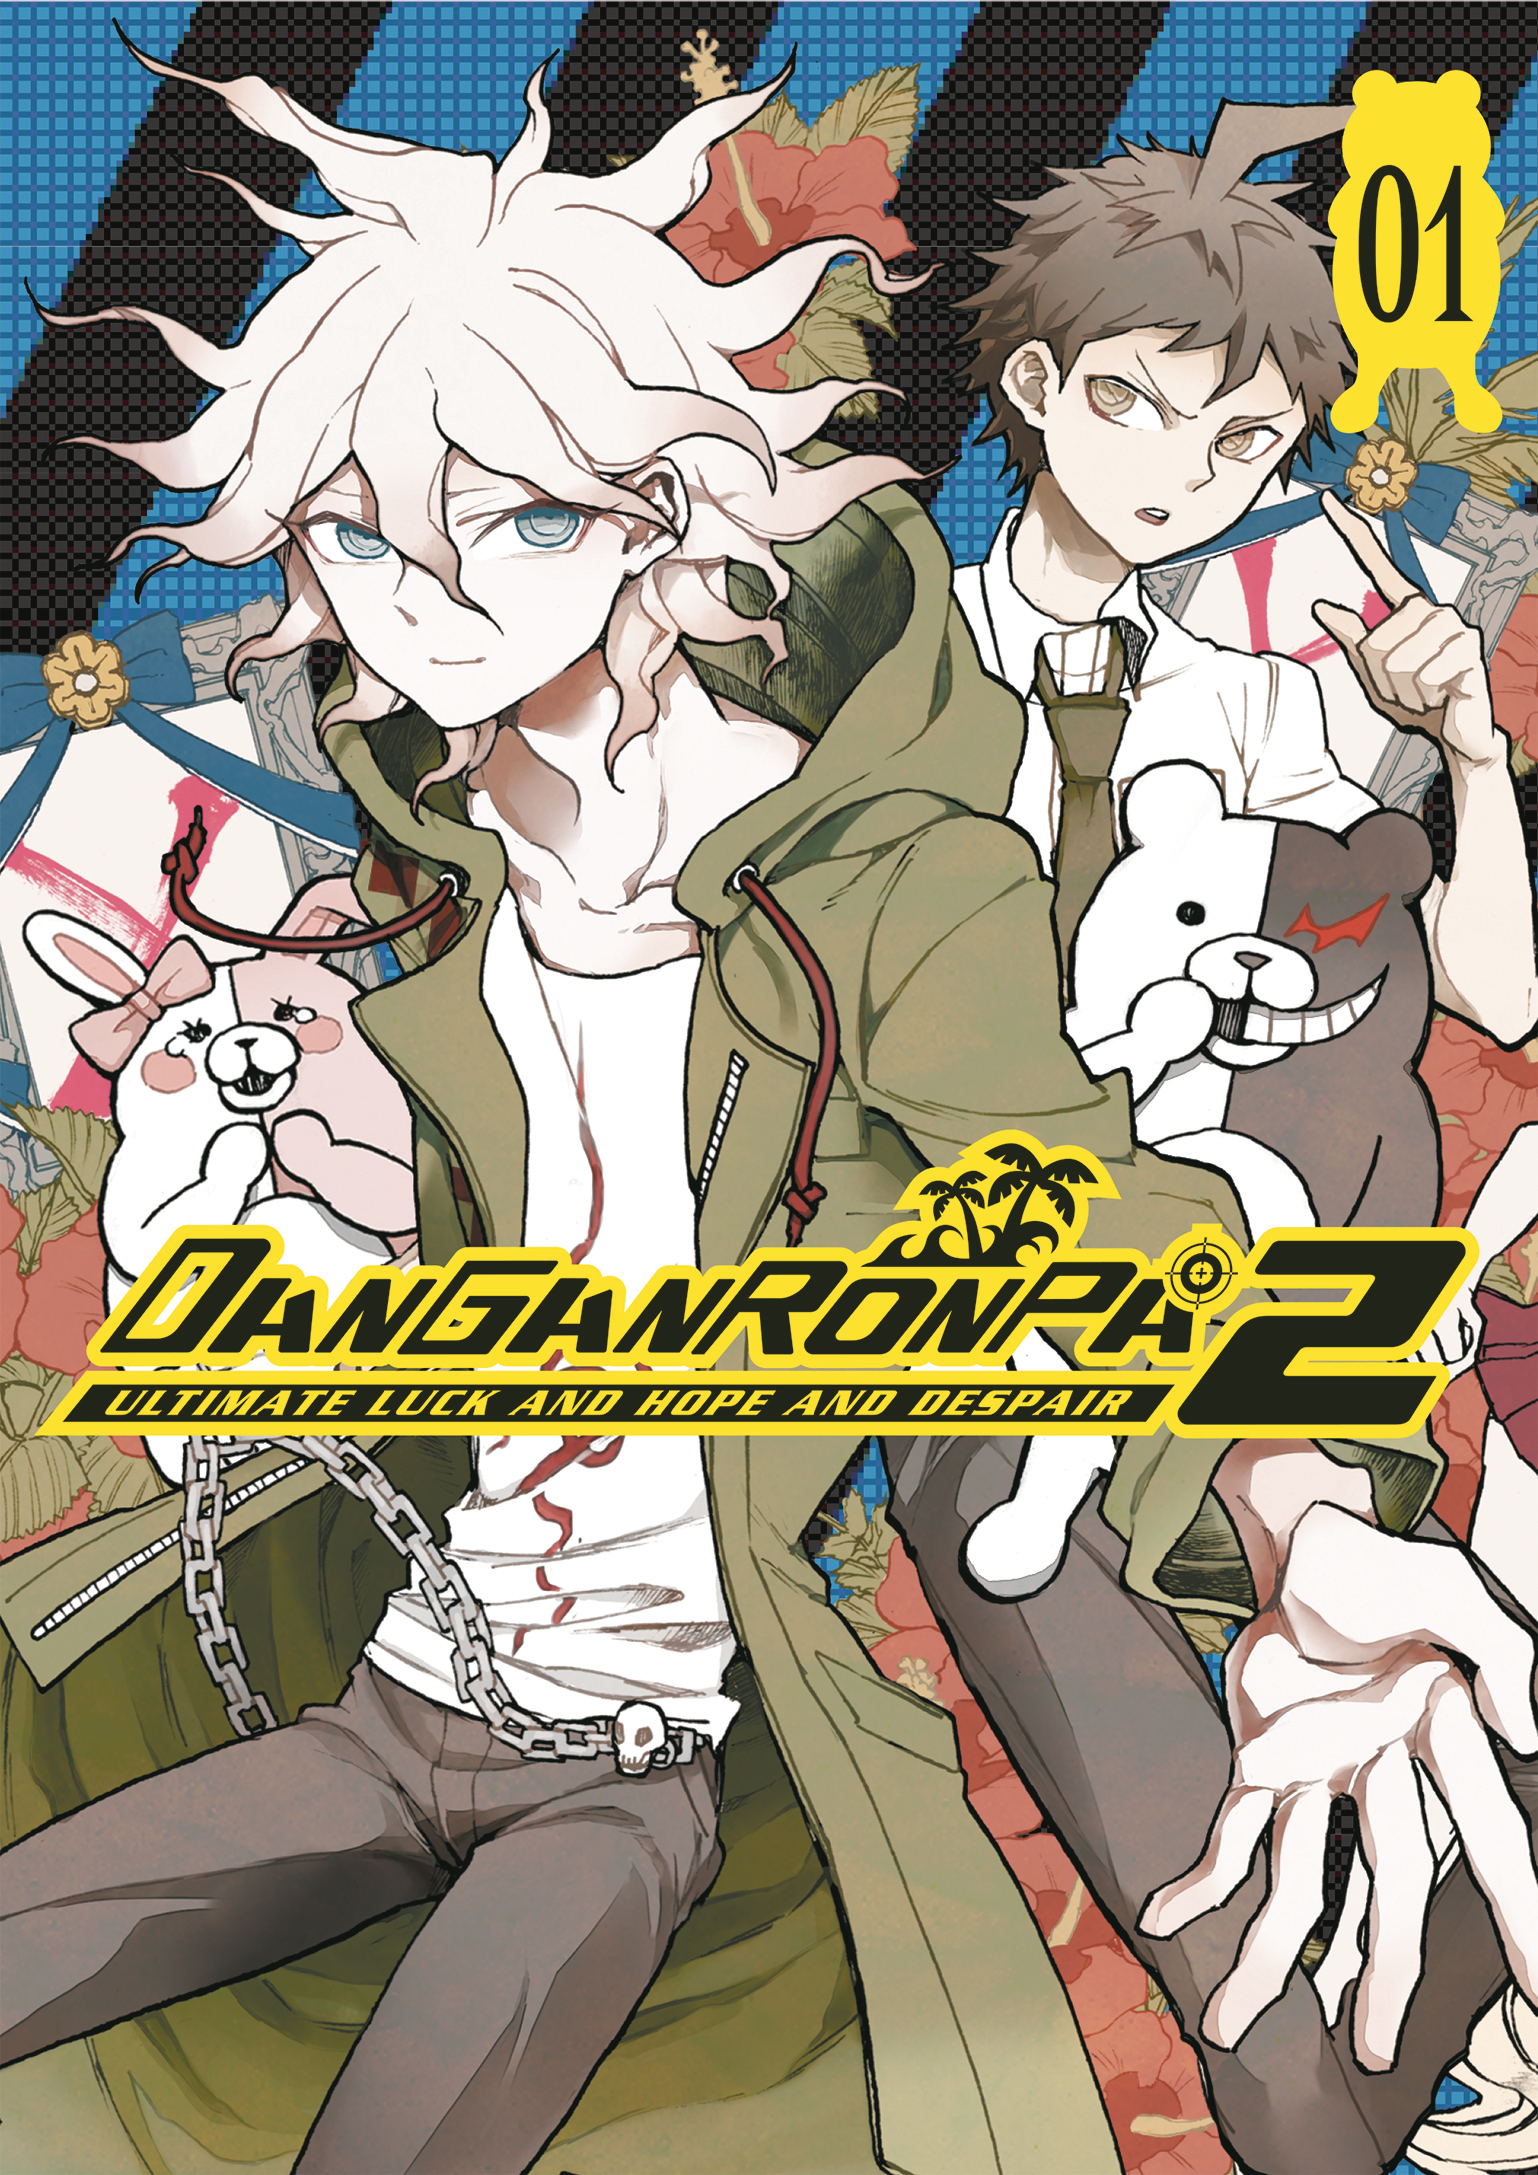 DANGANRONPA 2 VOL 01 ULTIMATE LUCK HOPE DESPAIR TP